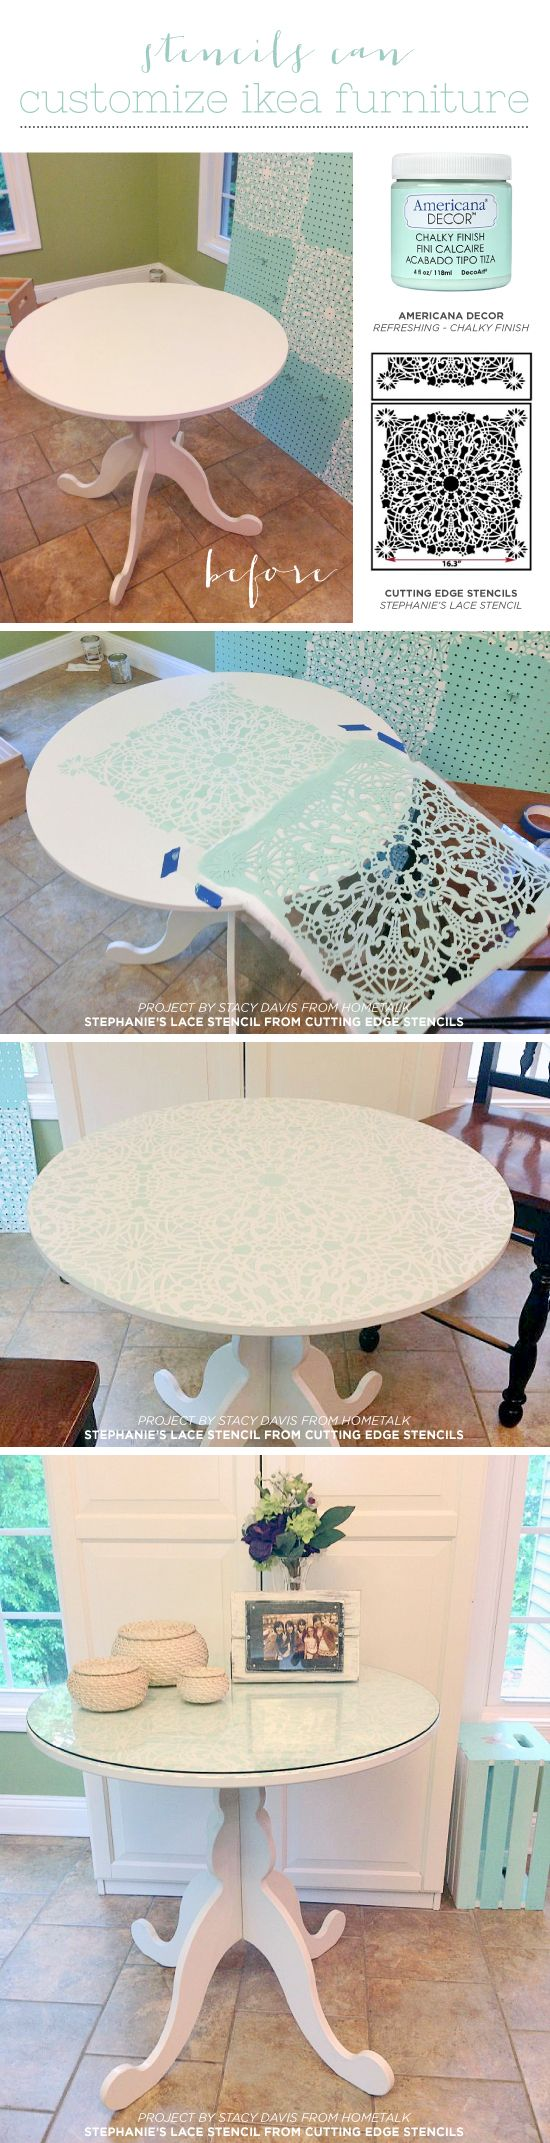 Cutting Edge Stencils shares a DIY stenciled Ikea table using the Stephanie's Lace Stencil, a lace pattern. http://www.cuttingedgestencils.com/lace-stencil-wall-decor-stencils.html